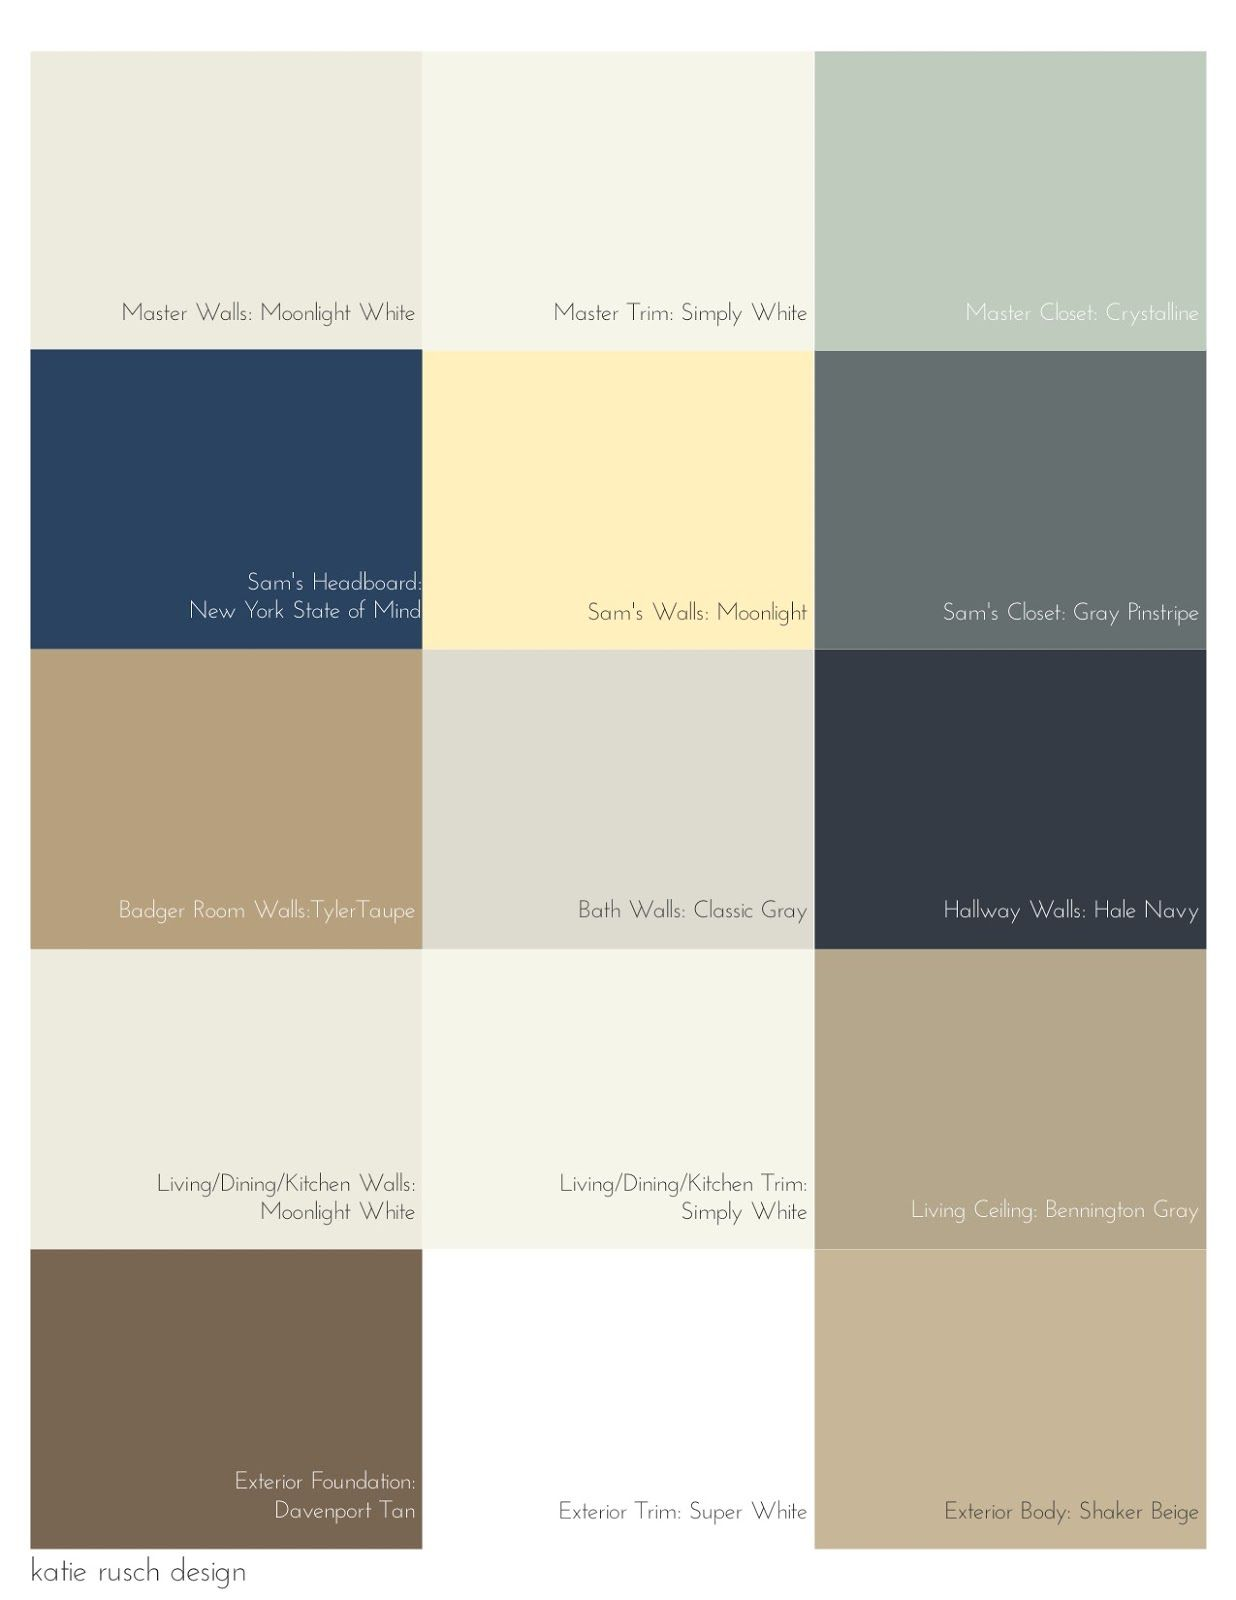 Modern Office Color Schemes Picking A Palette For Your Whole House Katie Rusch